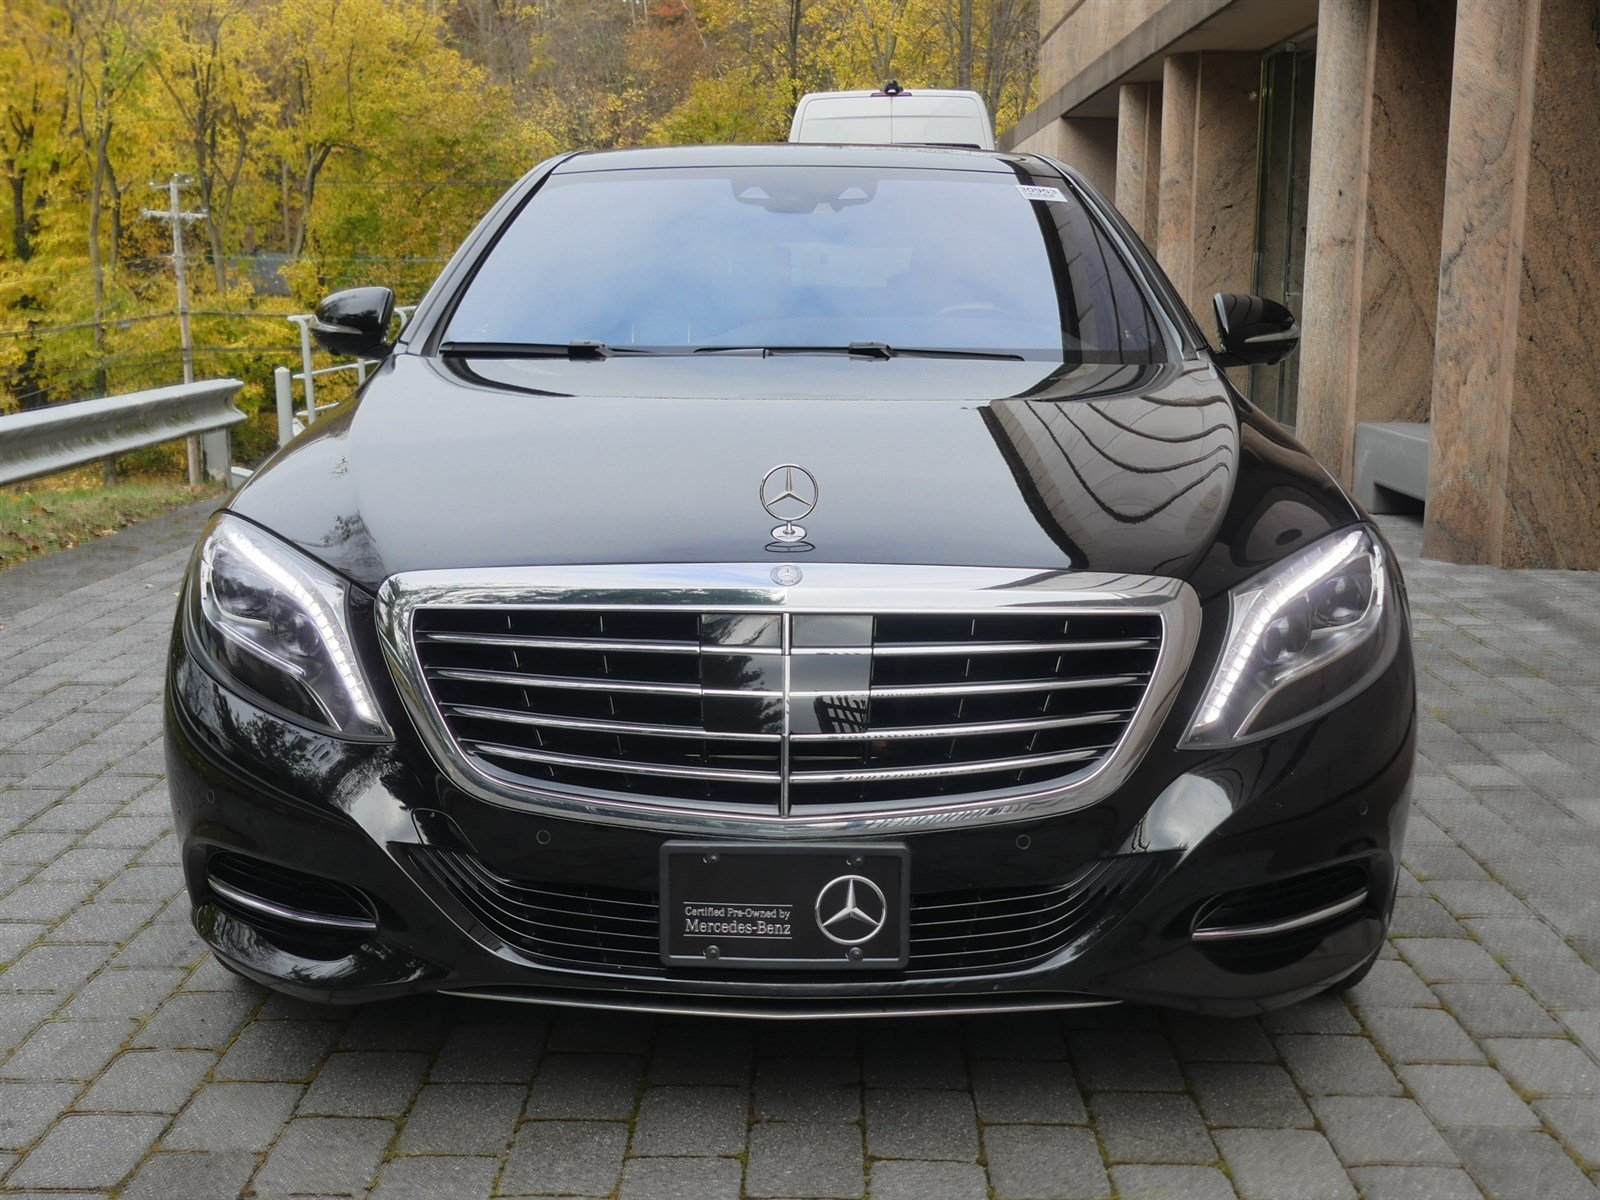 Certified Pre Owned 2015 Mercedes Benz S Class S 550 4dr Car in